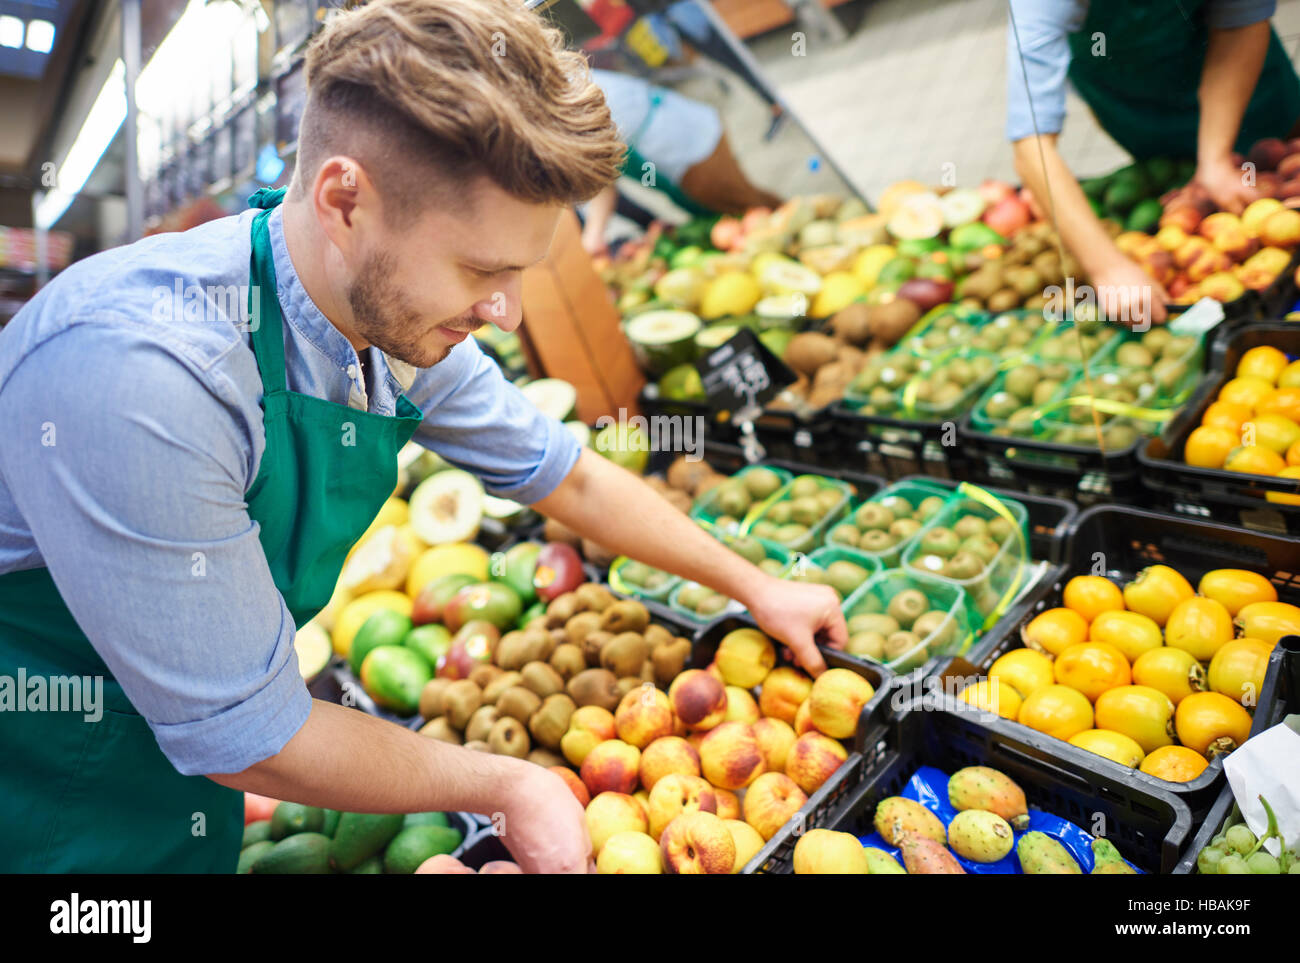 Sales clerk grabbing the box of fruits - Stock Image